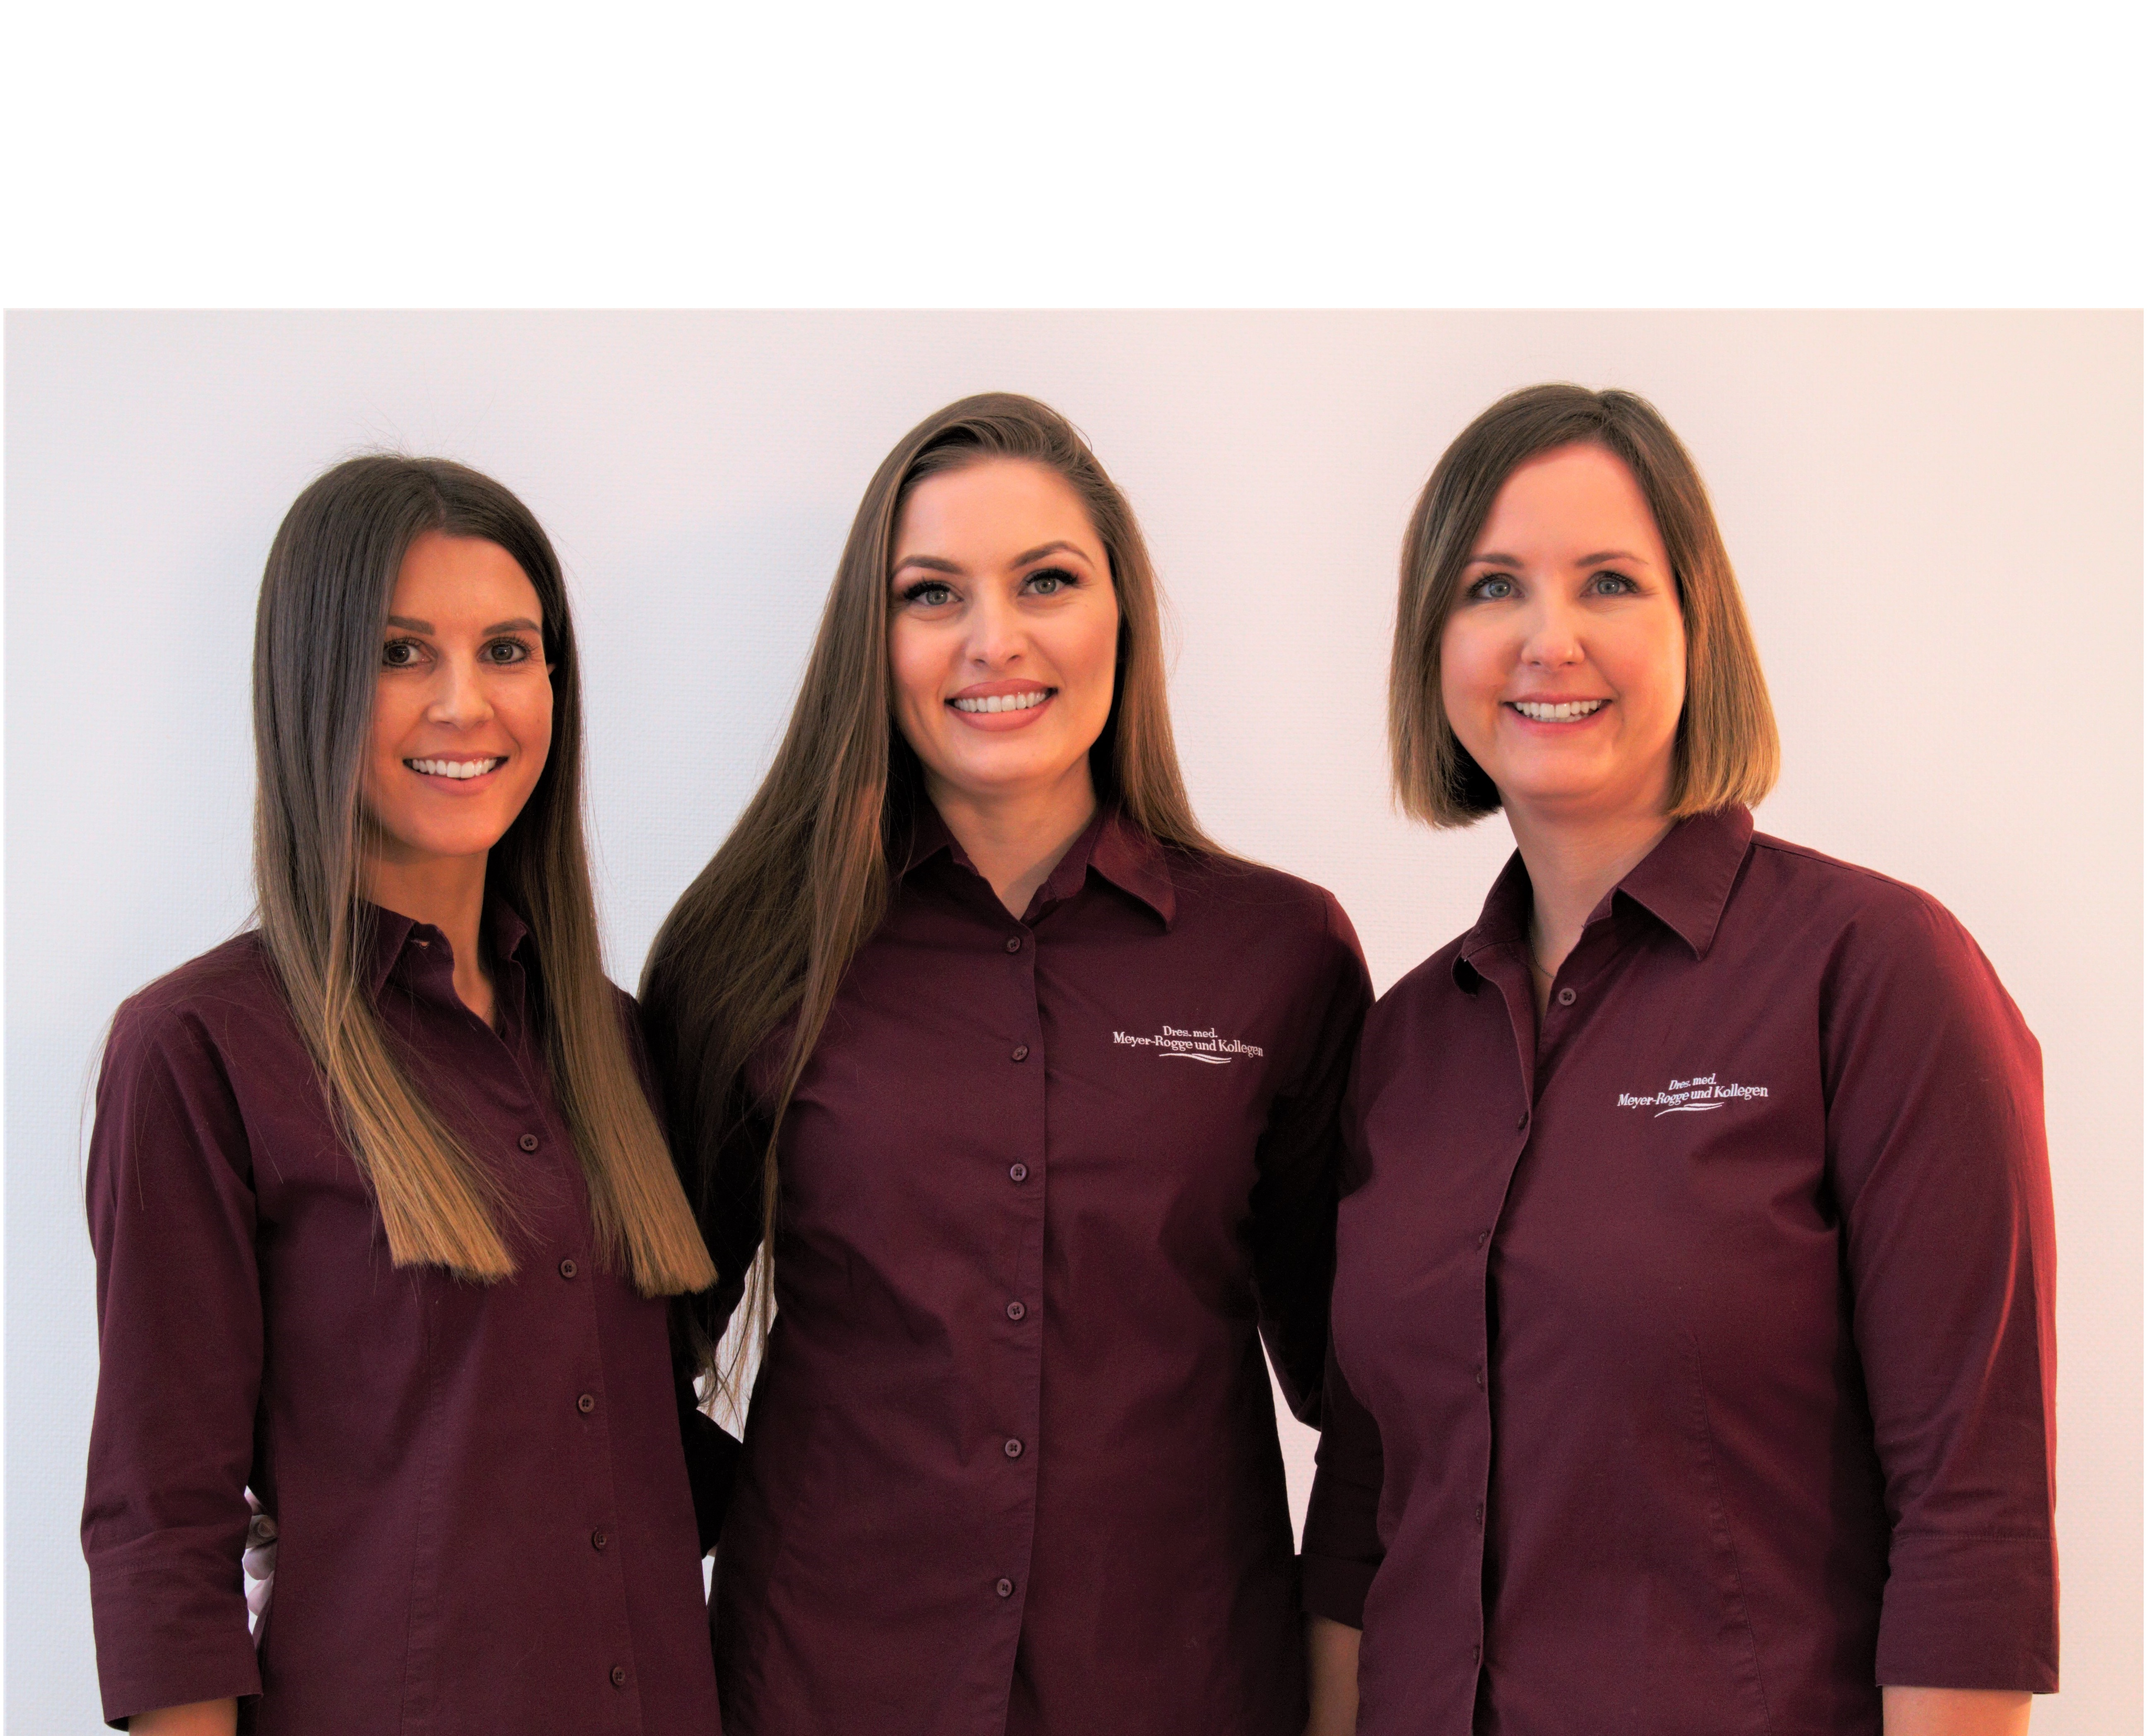 Teamfoto Cosmetic-Center